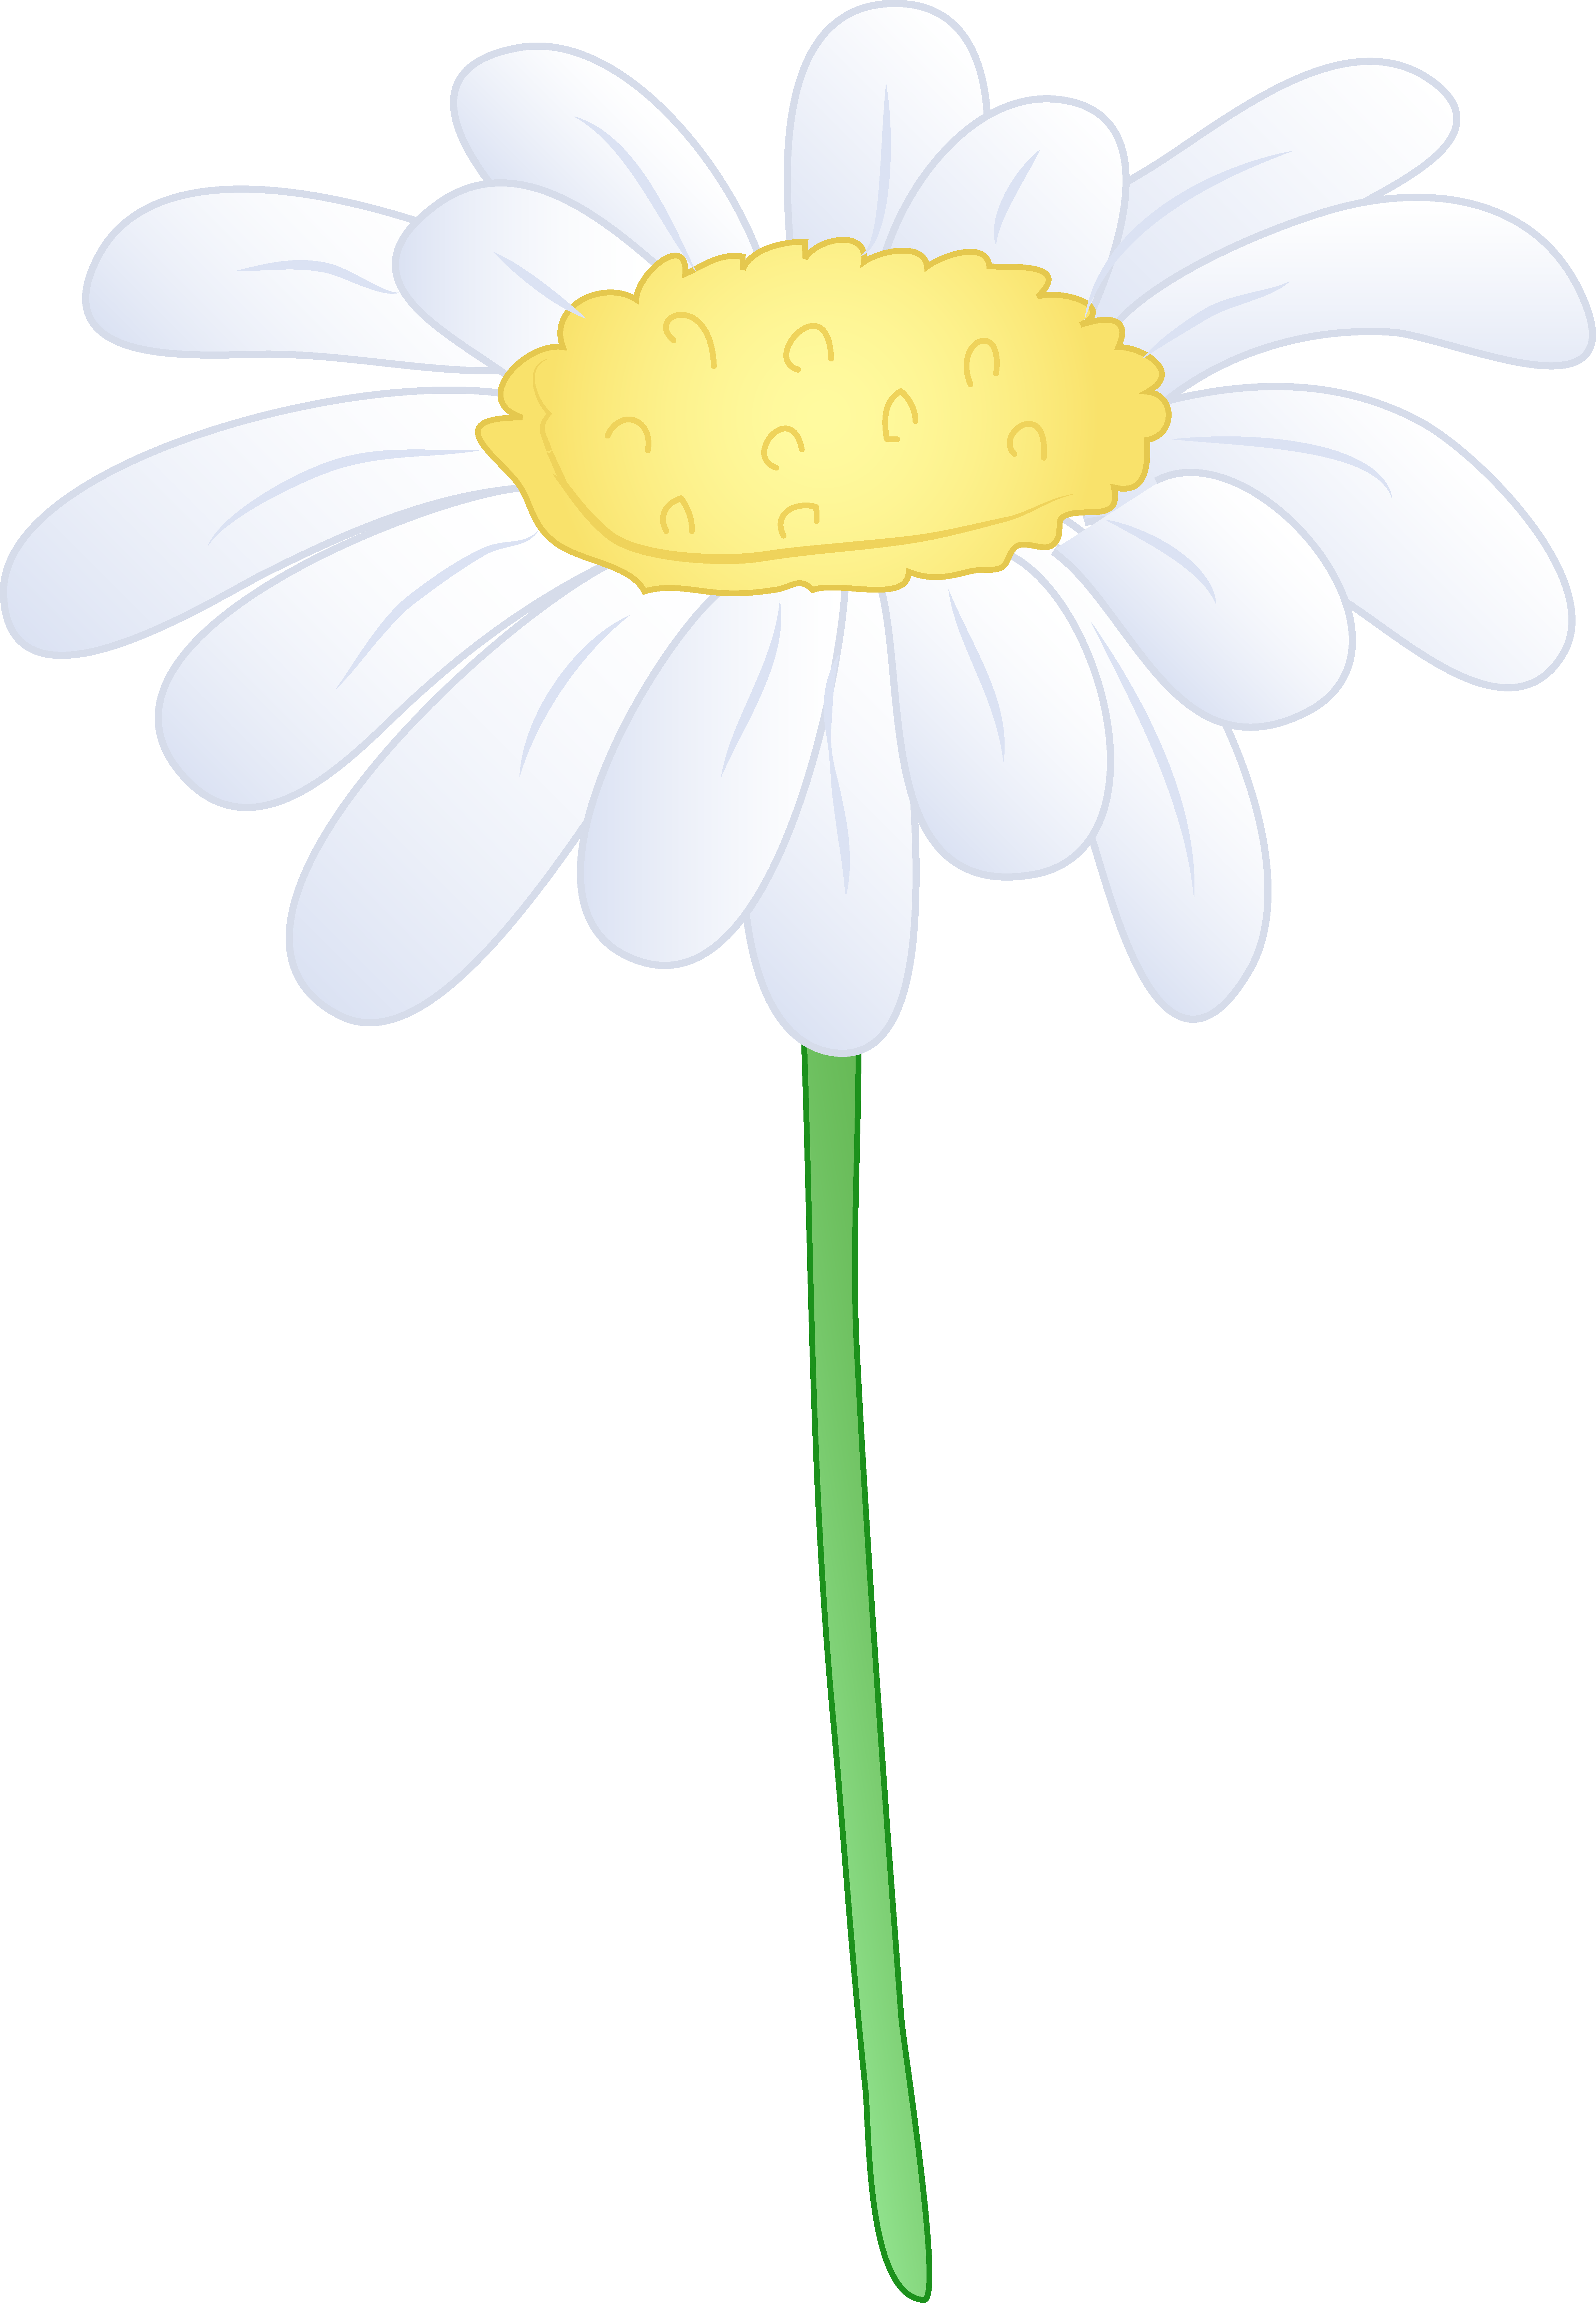 Single white flower clipart 20 free Cliparts | Download ...